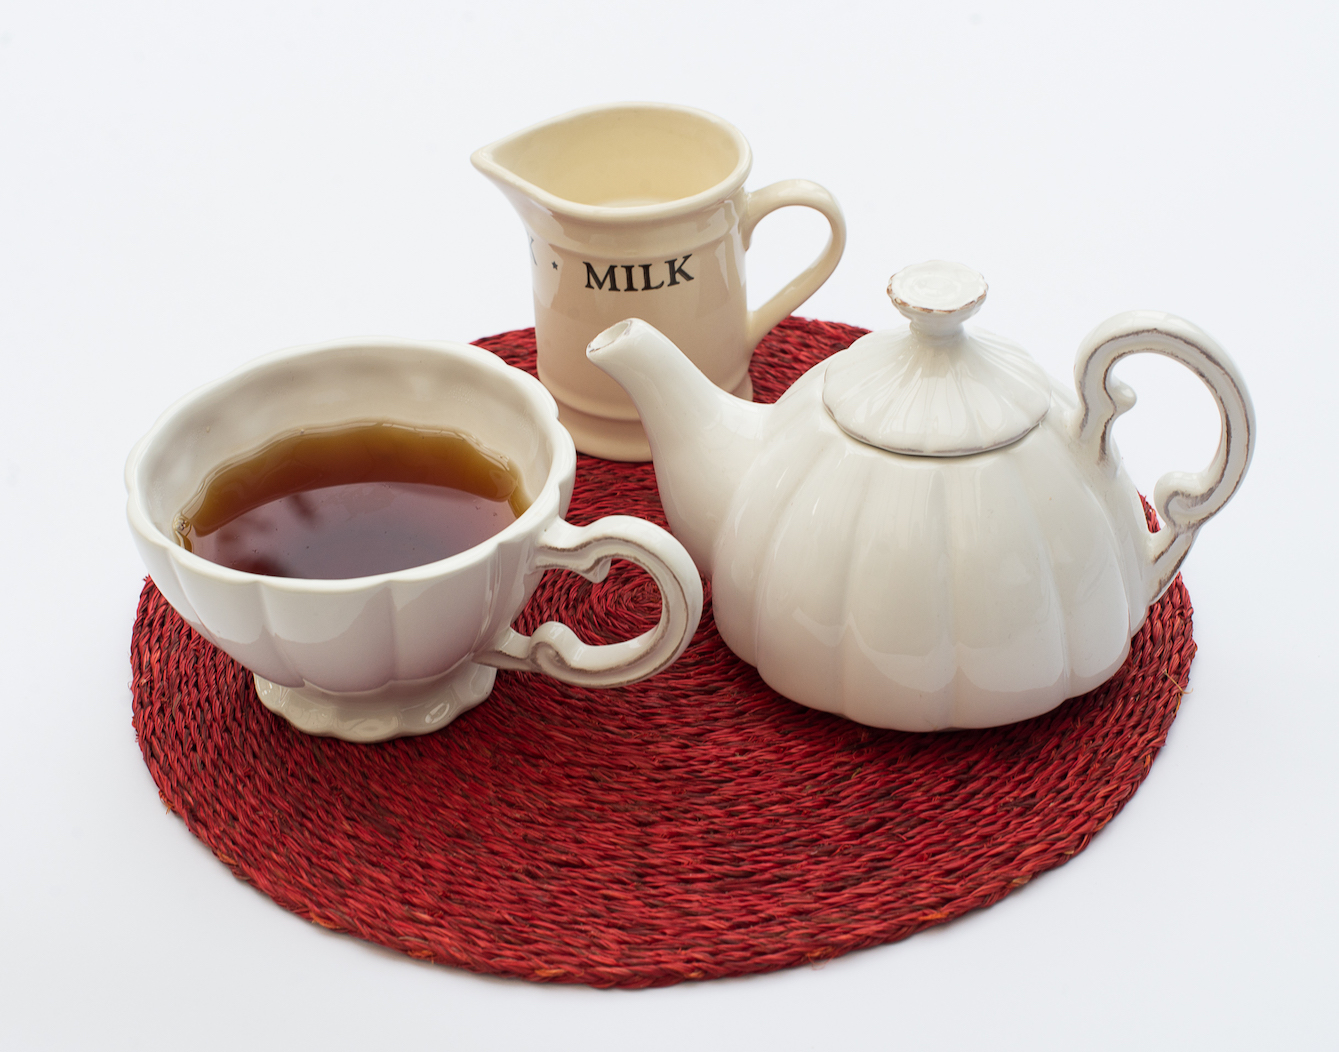 Tea pot, tea, milk, no cream - The English Cream Tea Company